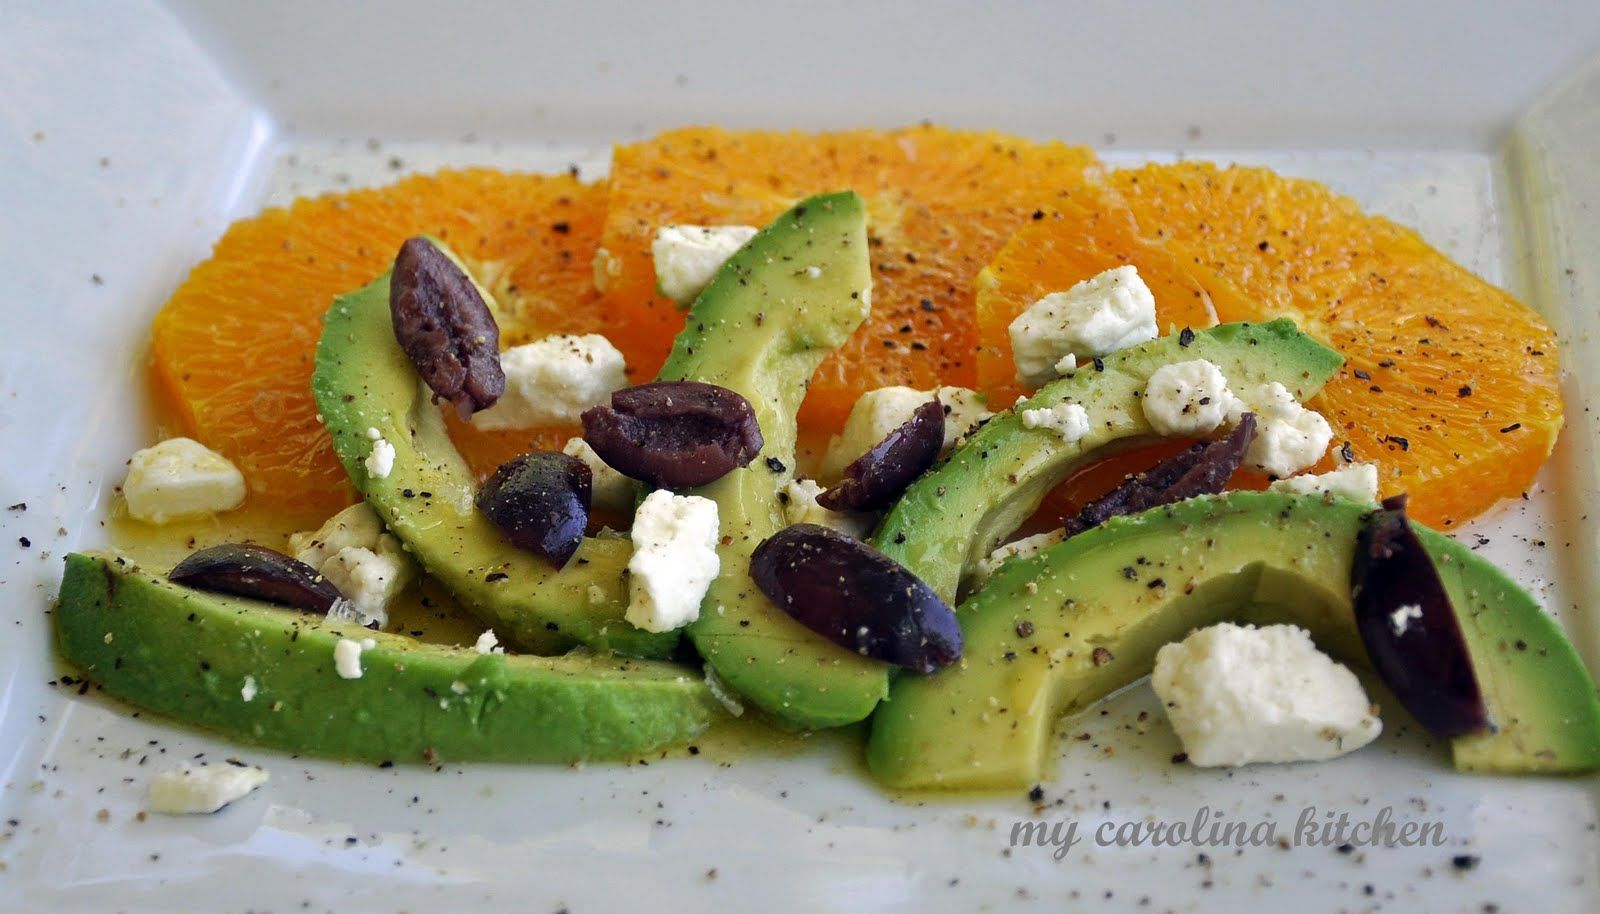 My Carolina Kitchen: Orange & Avocado Salad flavored with one of the authentic flavors of Provence - Pastis